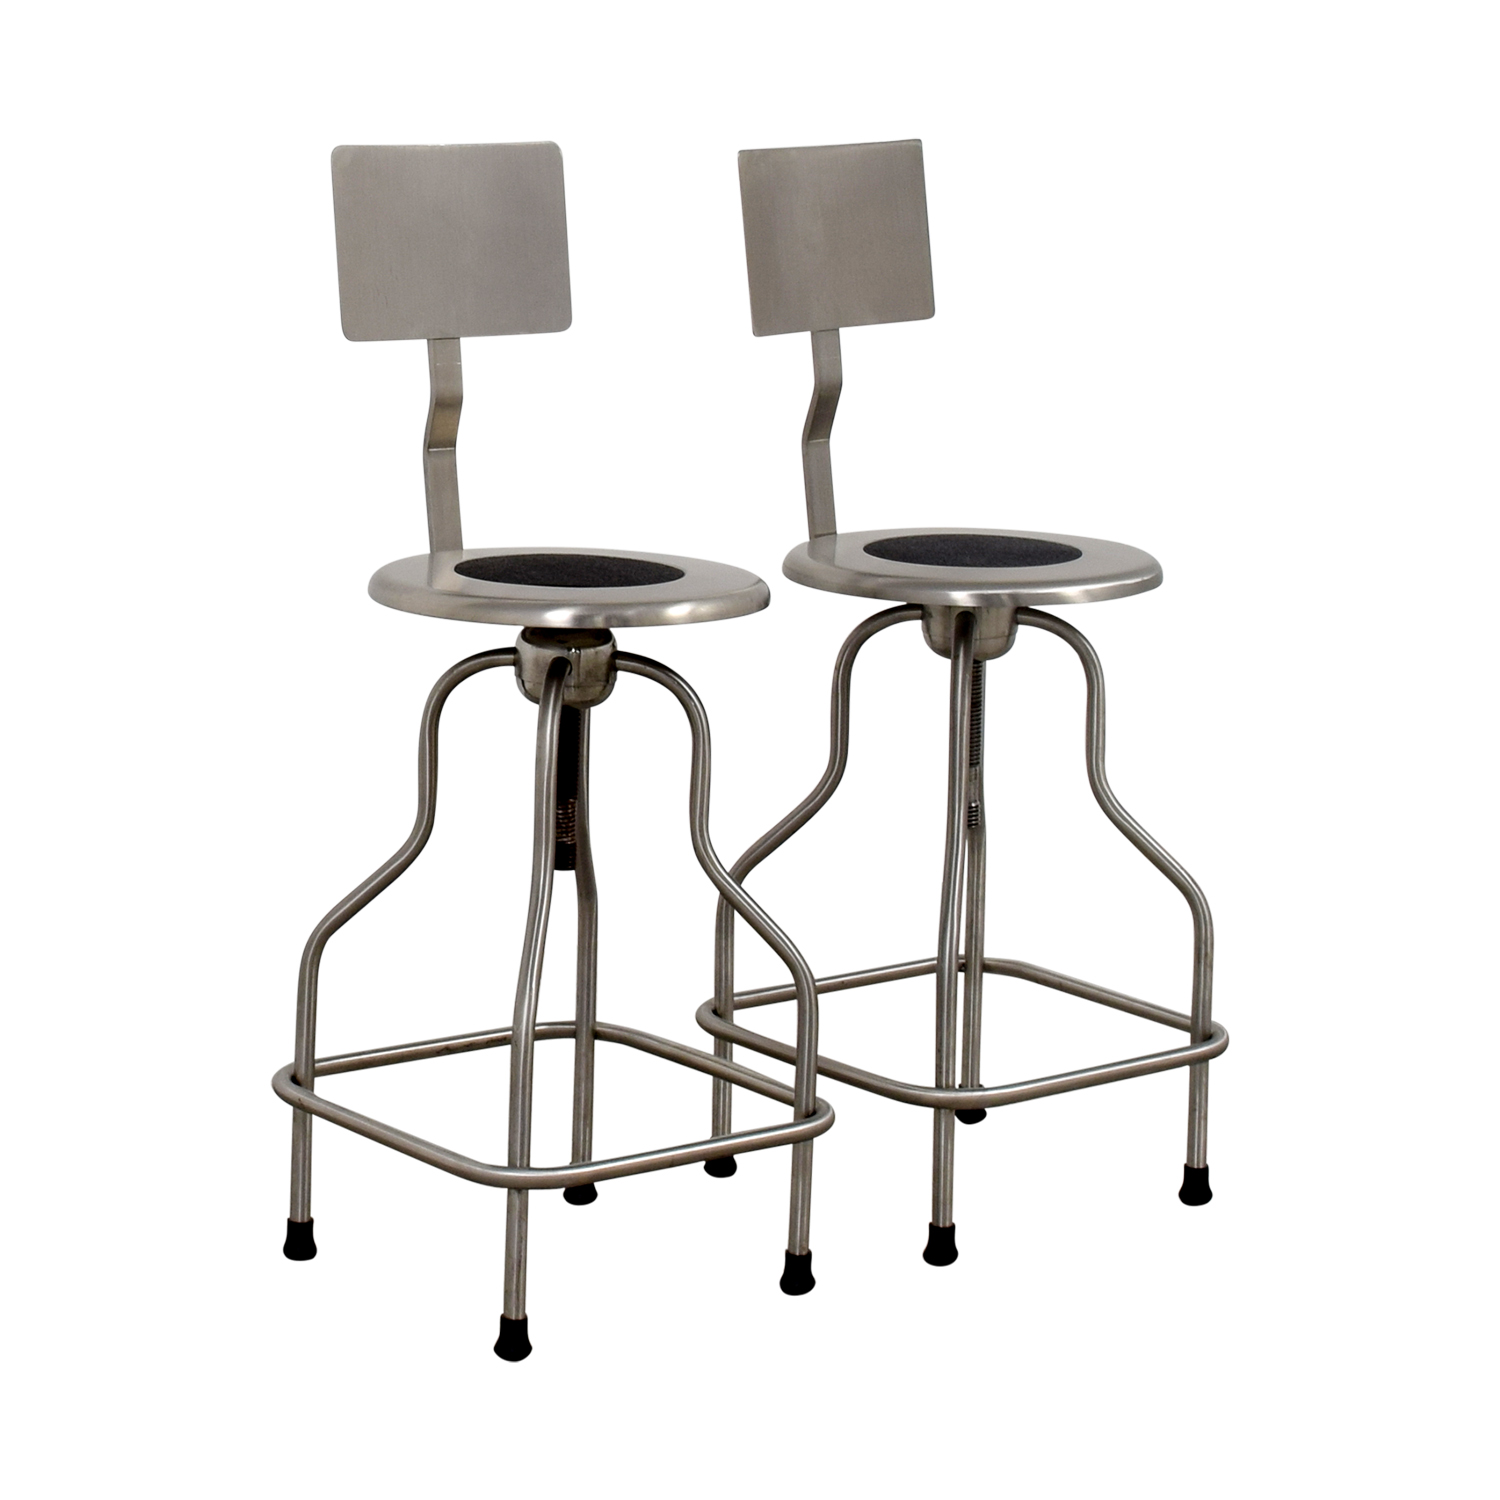 61 off design within reach design within reach steel precision stools with back rest chairs - Design within reach bed frame ...